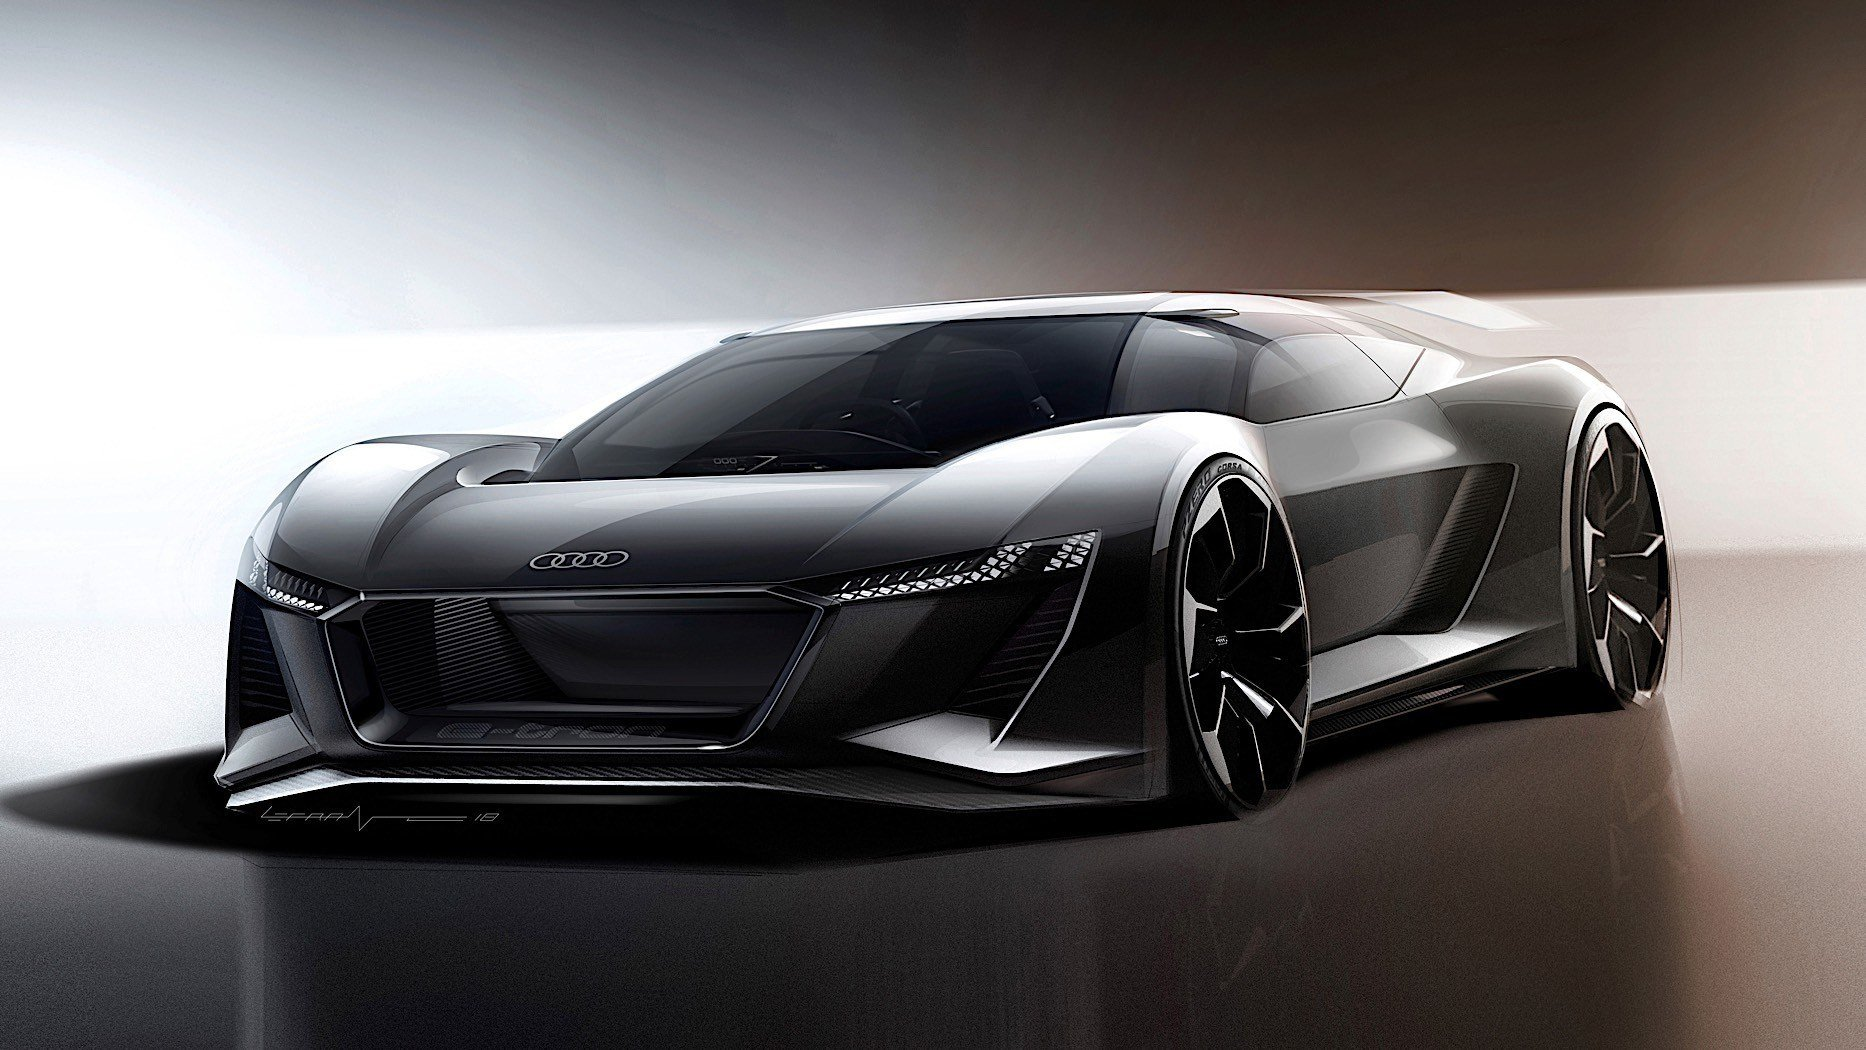 Latest Audi Pb18 E Tron Concept Car Is A Californian Nod To Le Free Download